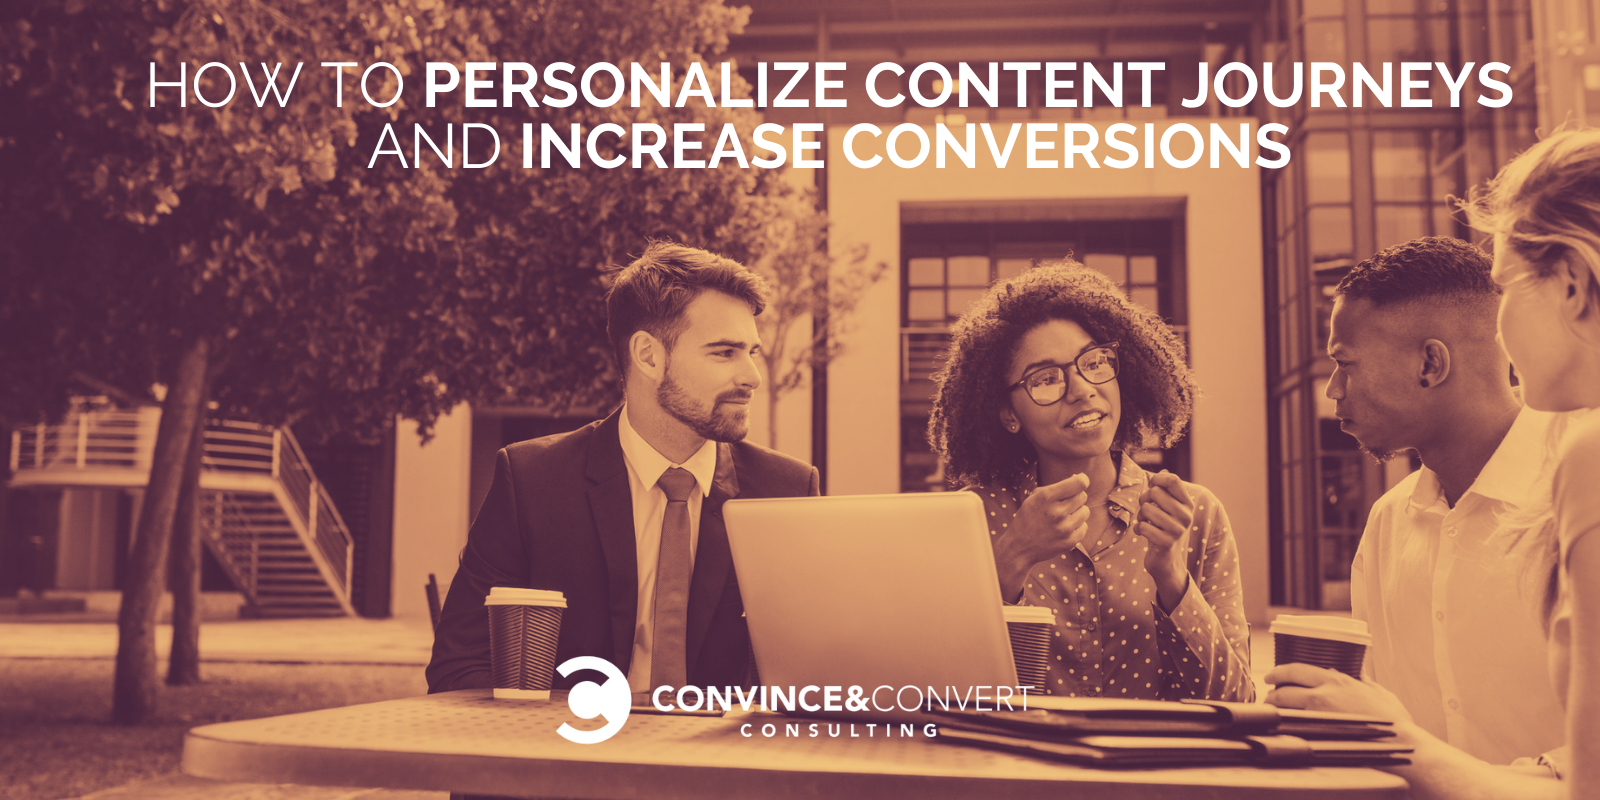 How to Personalize Content Journeys And Increase Conversions